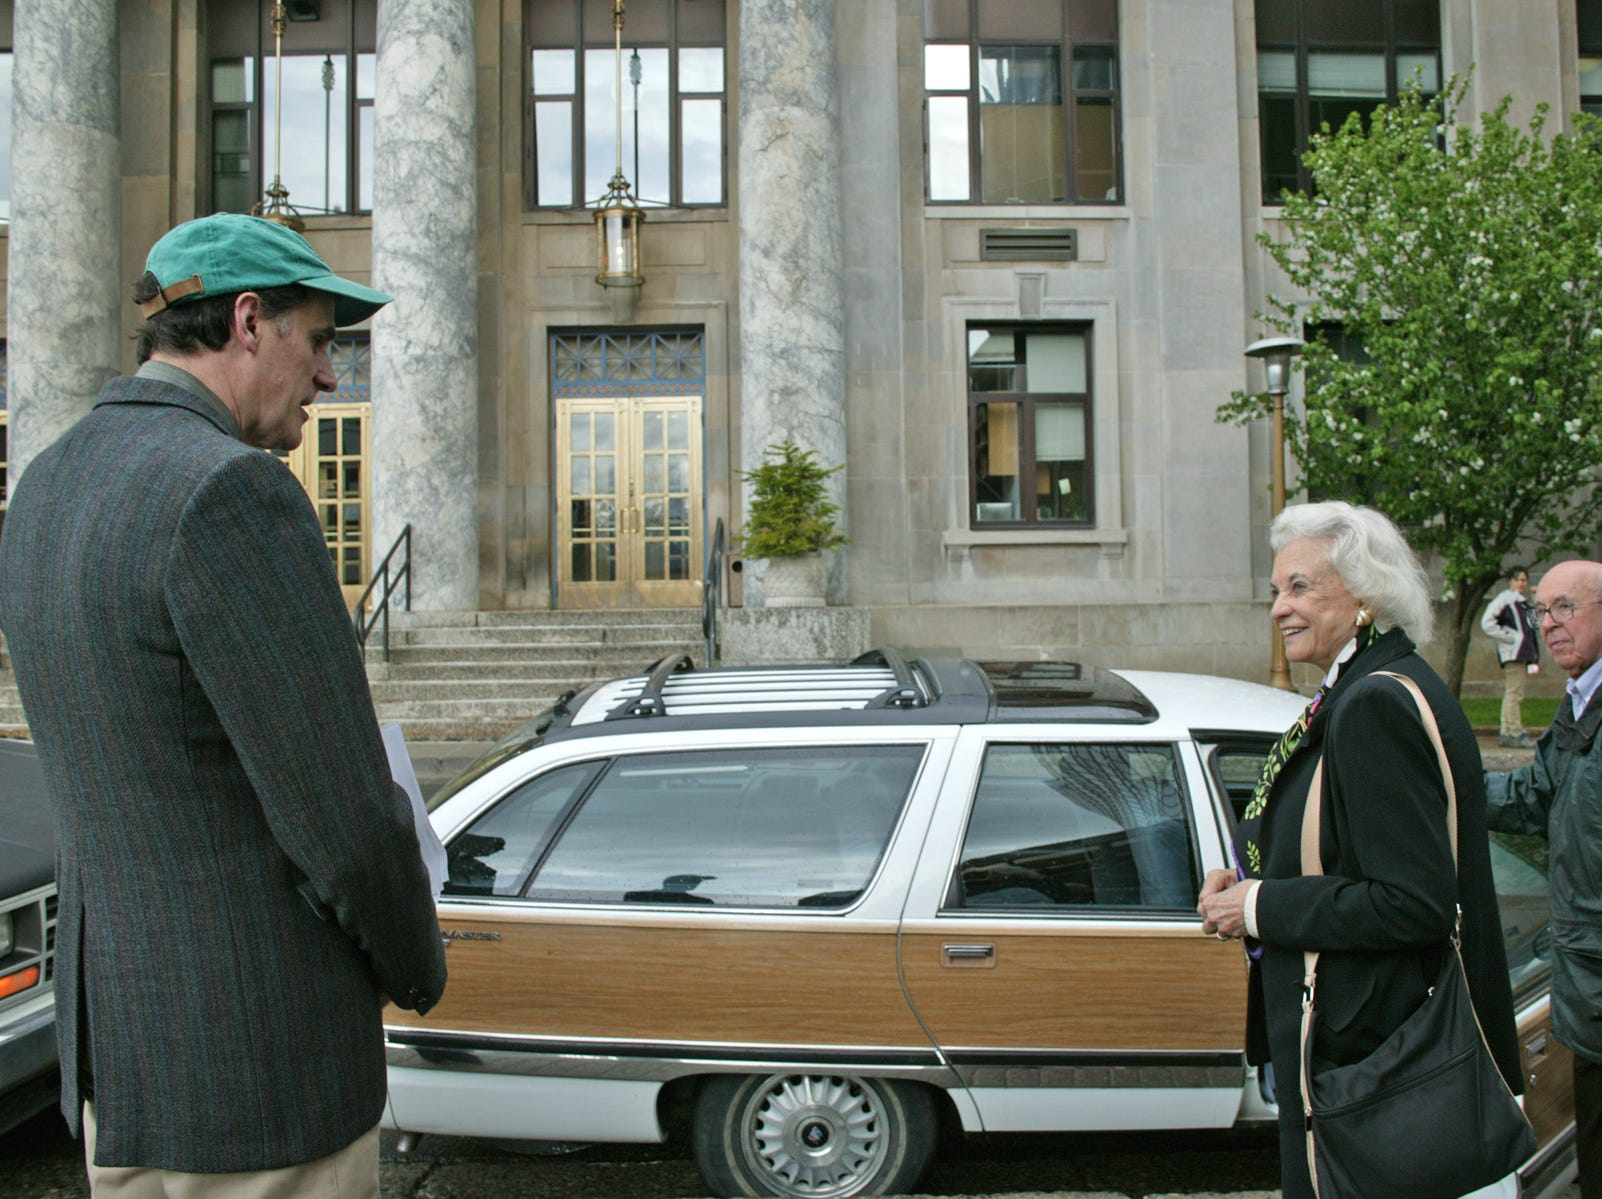 Rep. Bruce Weyhrauch, R-Juneau, (left) bids farewell to U.S. Supreme Court Justice Sandra Day O'Connor after she visits the Dimond Courthouse with retired Superior Court Judge Thomas Stewart on May 13, 2005, across from the Capitol in Juneau, Alaska. The Alaska Bar Association finished its three-day convention Friday at Centennial Hall, where O'Connor was invited to speak and present the American Judicature Society's Herbert Harley Award to Judge Stewart. The last time she visited Juneau was in 1952.